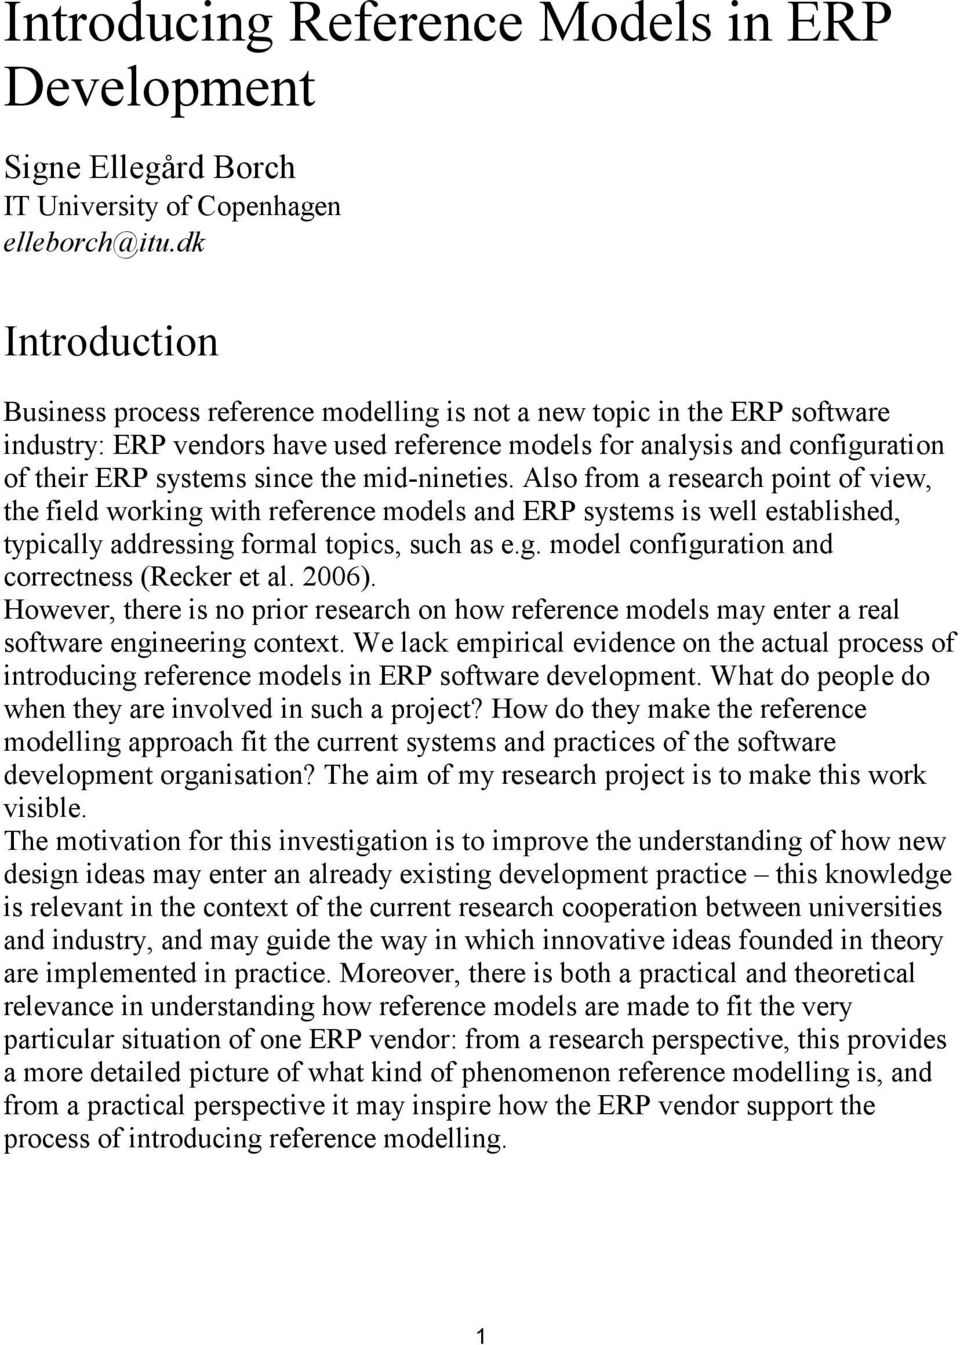 the mid-nineties. Also from a research point of view, the field working with reference models and ERP systems is well established, typically addressing formal topics, such as e.g. model configuration and correctness (Recker et al.